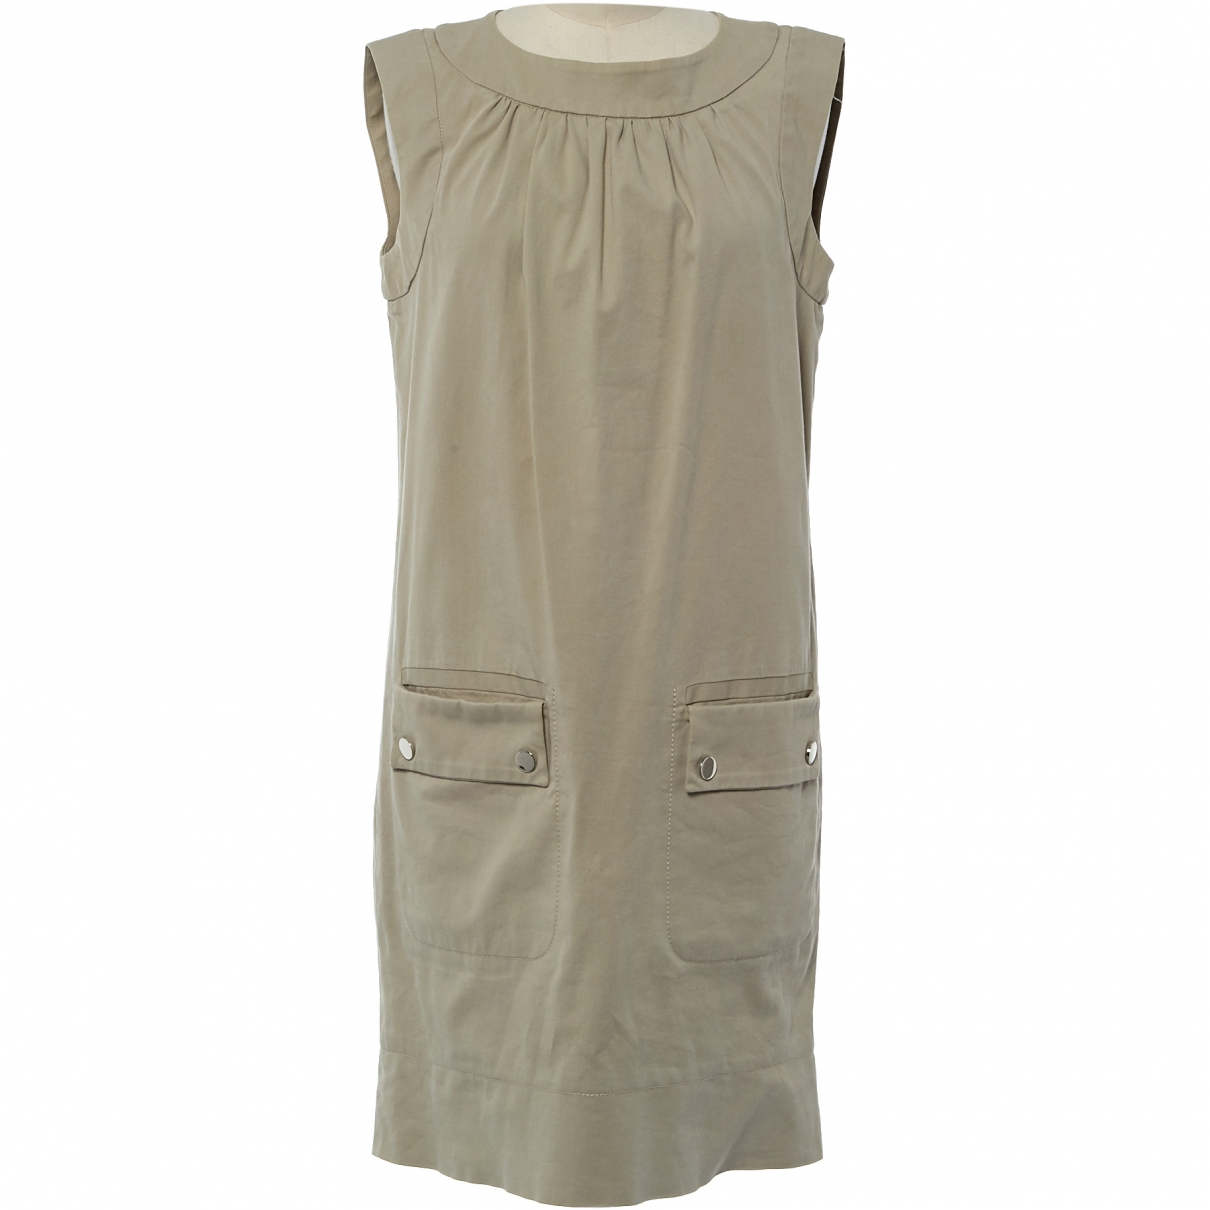 Dolce & Gabbana \N Beige Cotton dress for Women 40 IT